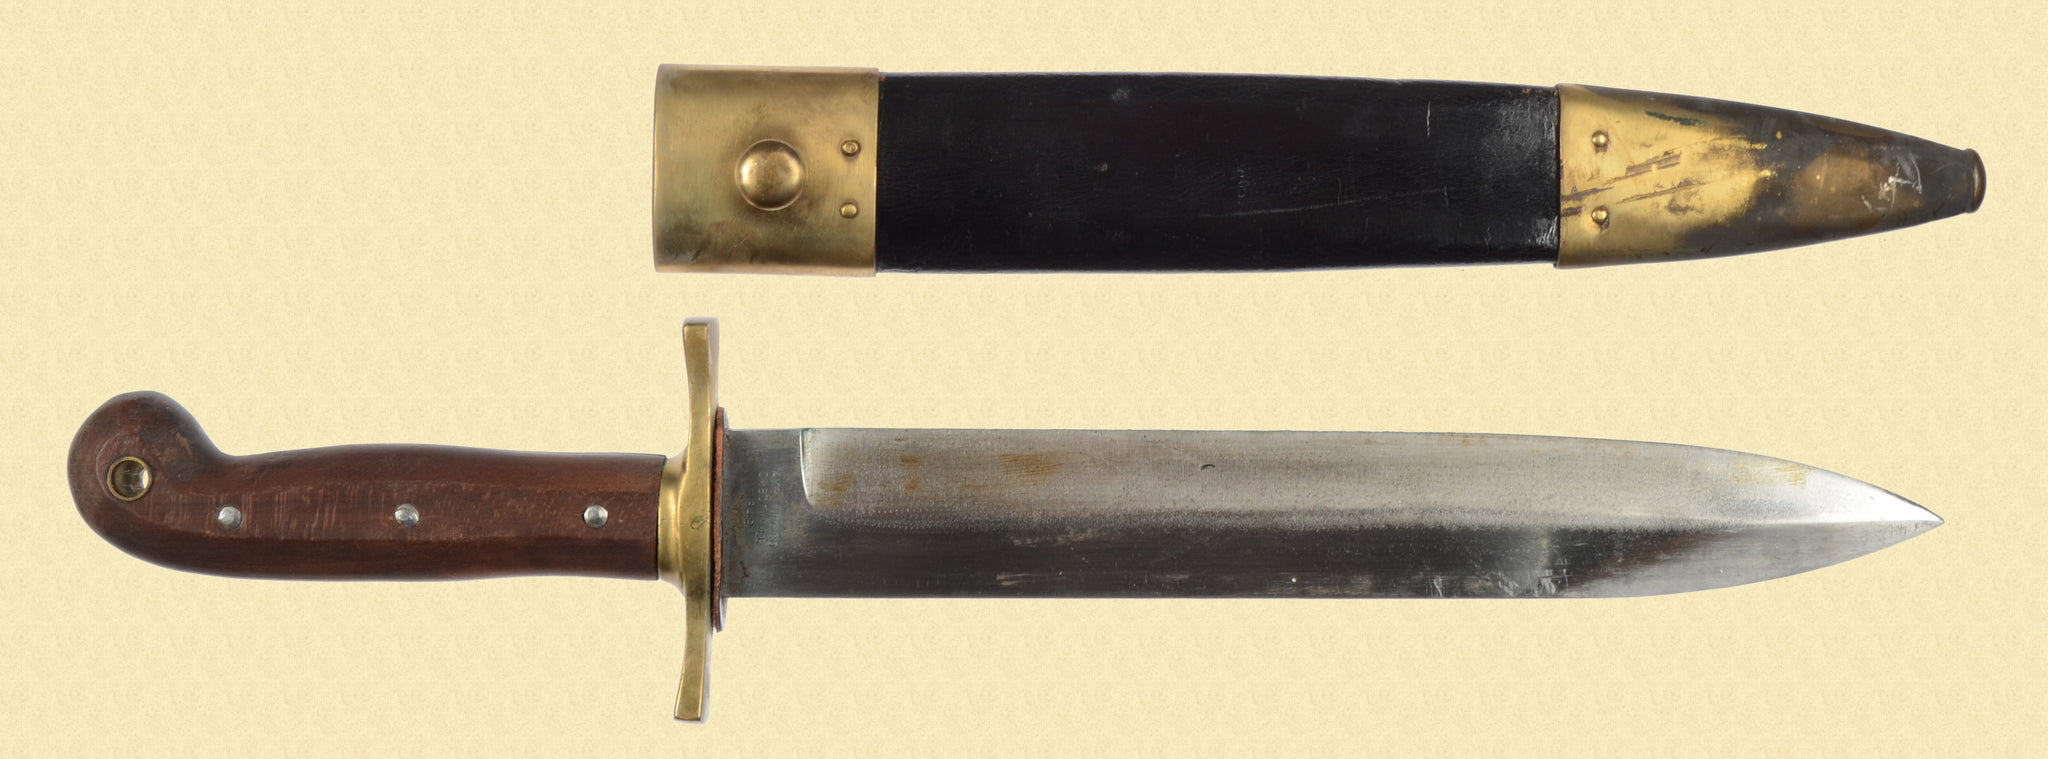 REPRODUCTION AMES 1849 RIFLEMANS KNIFE